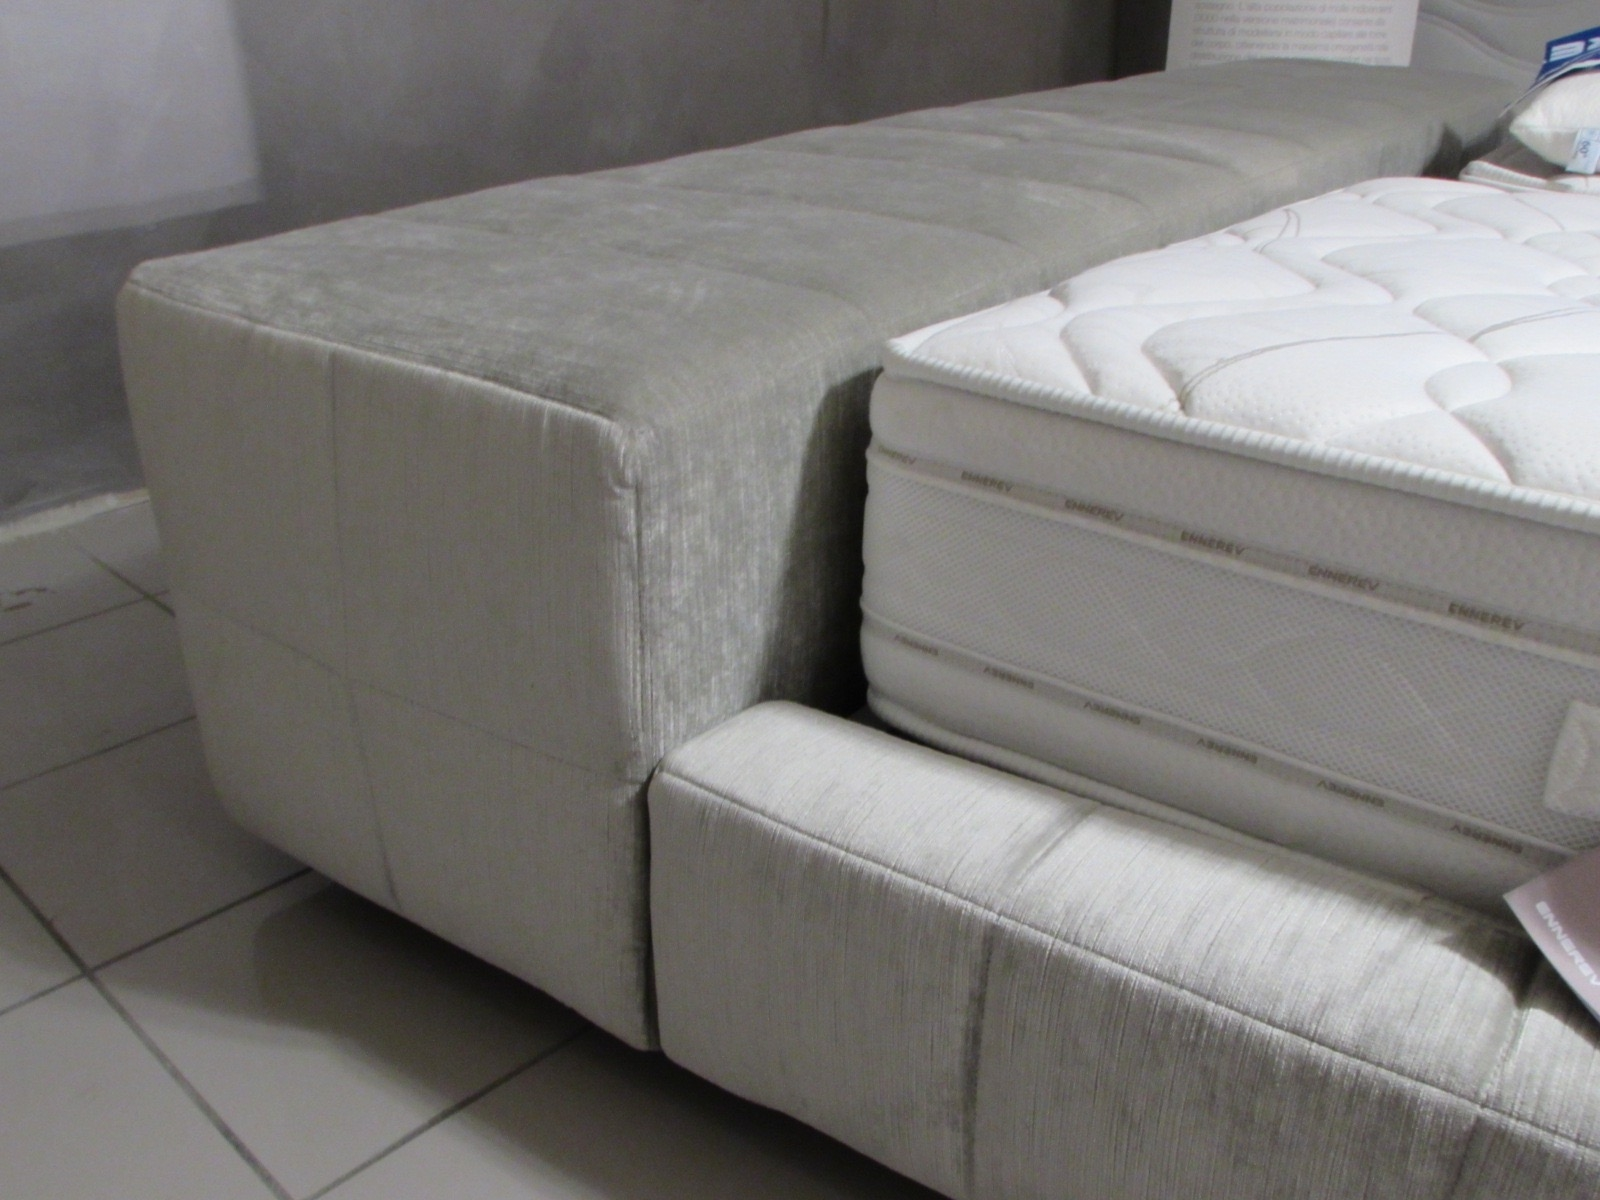 Bonaldo letto squaring matrimoniale design letti a for Letto matrimoniale design